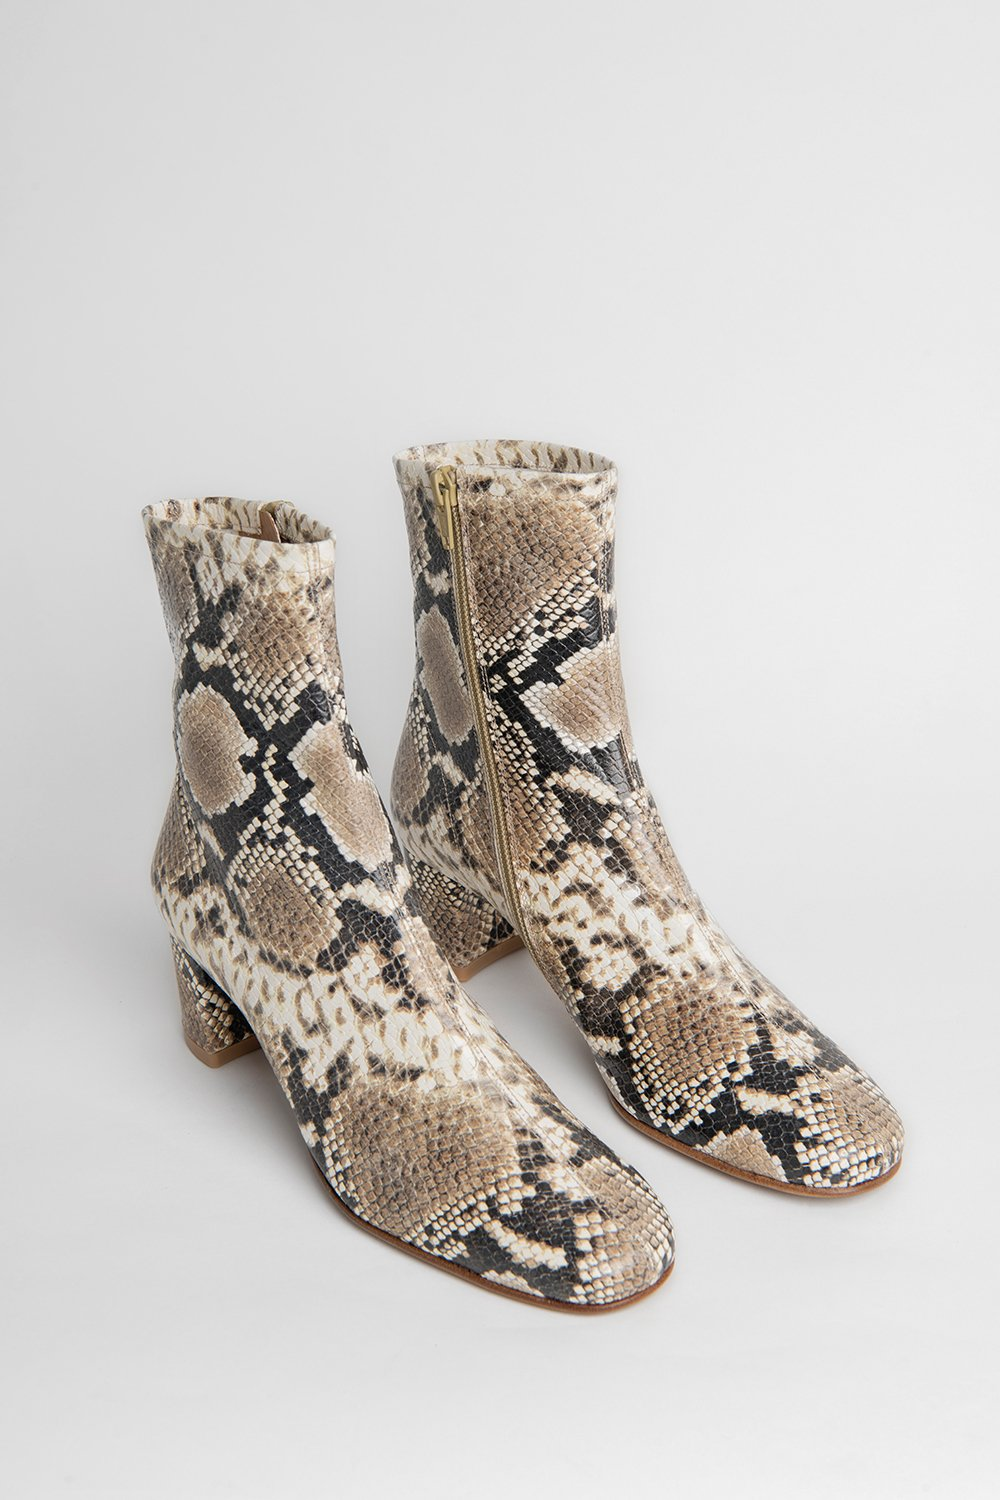 BY FAR Sofia Snake Print Leather Boots